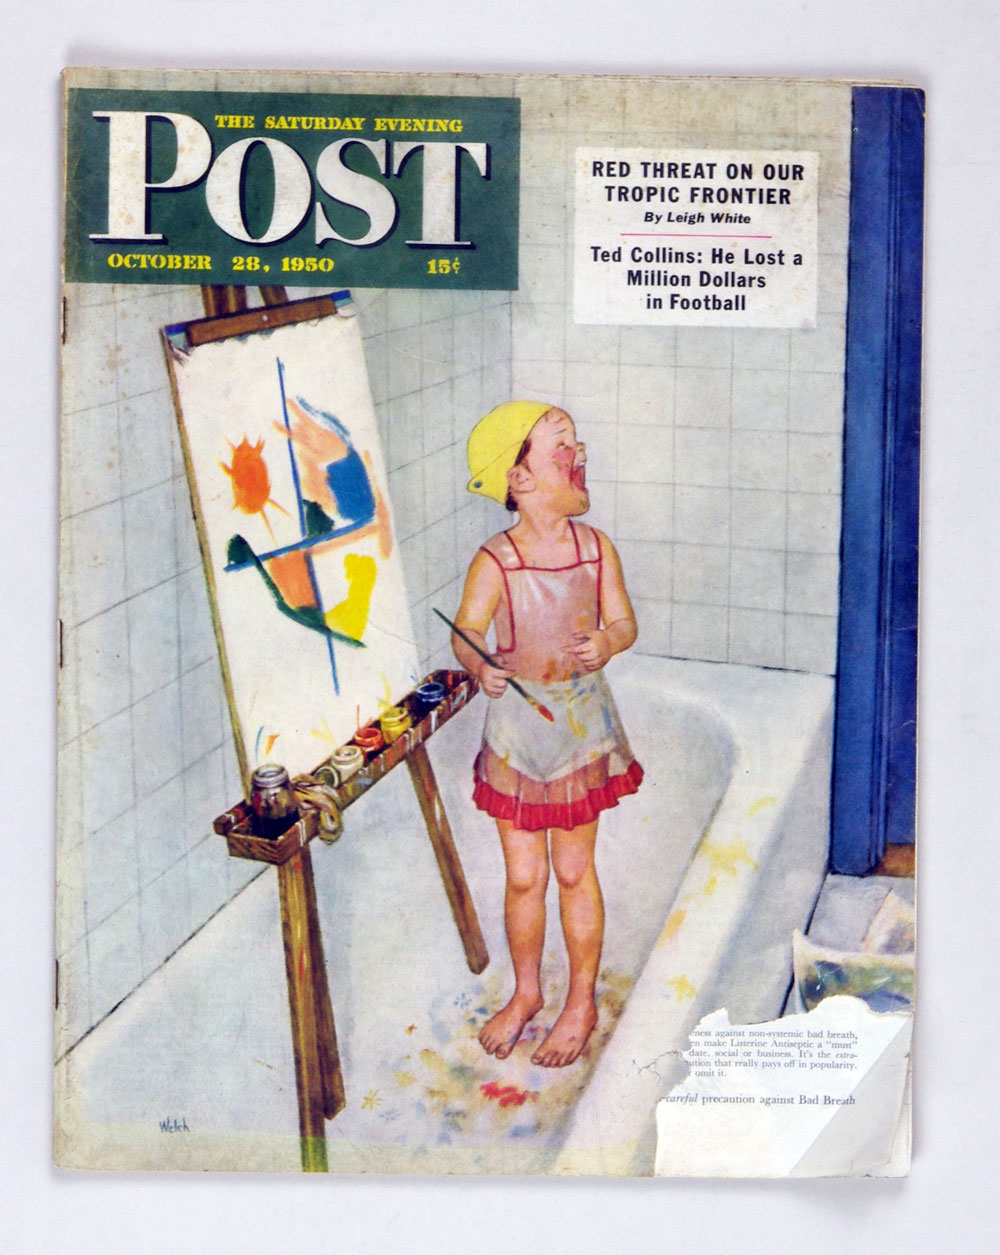 The Saturday Evening Post 1950 Oct 28 Kid Painting in Bathtub